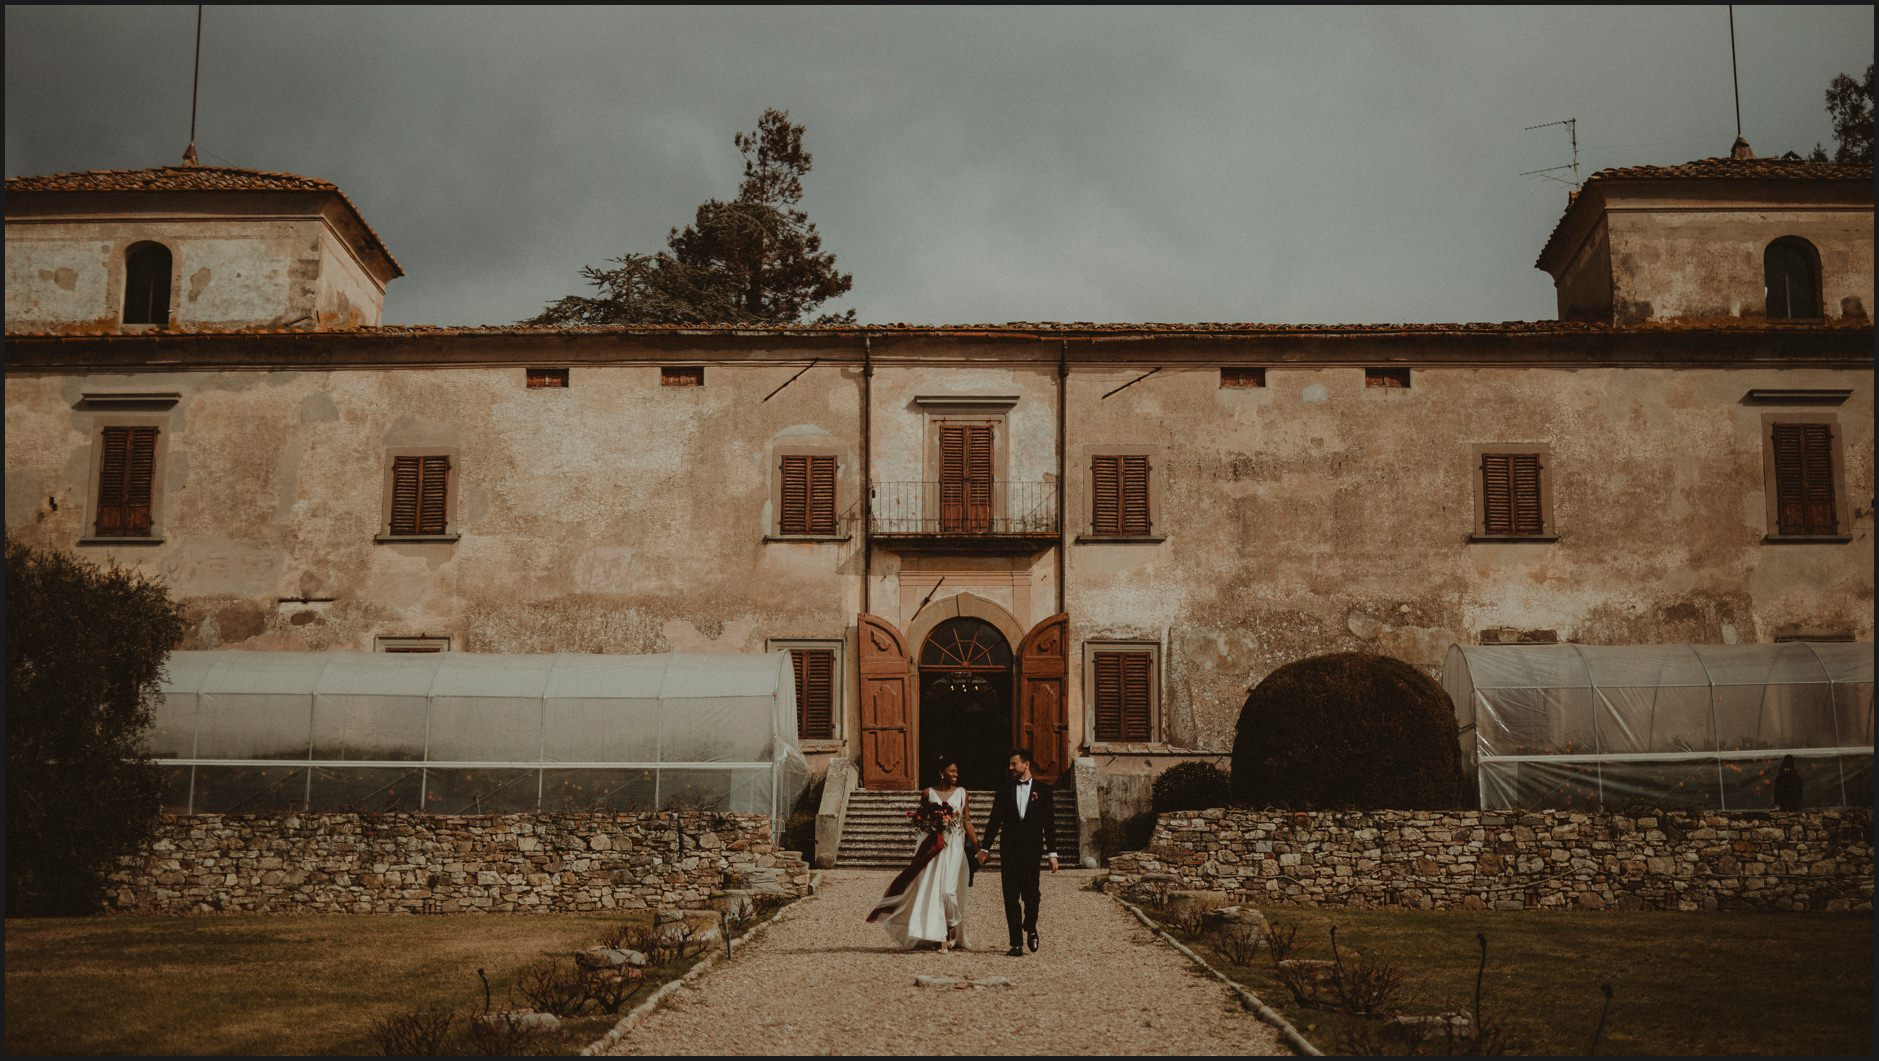 bride, groom, wedding, villa medicea di lilliano